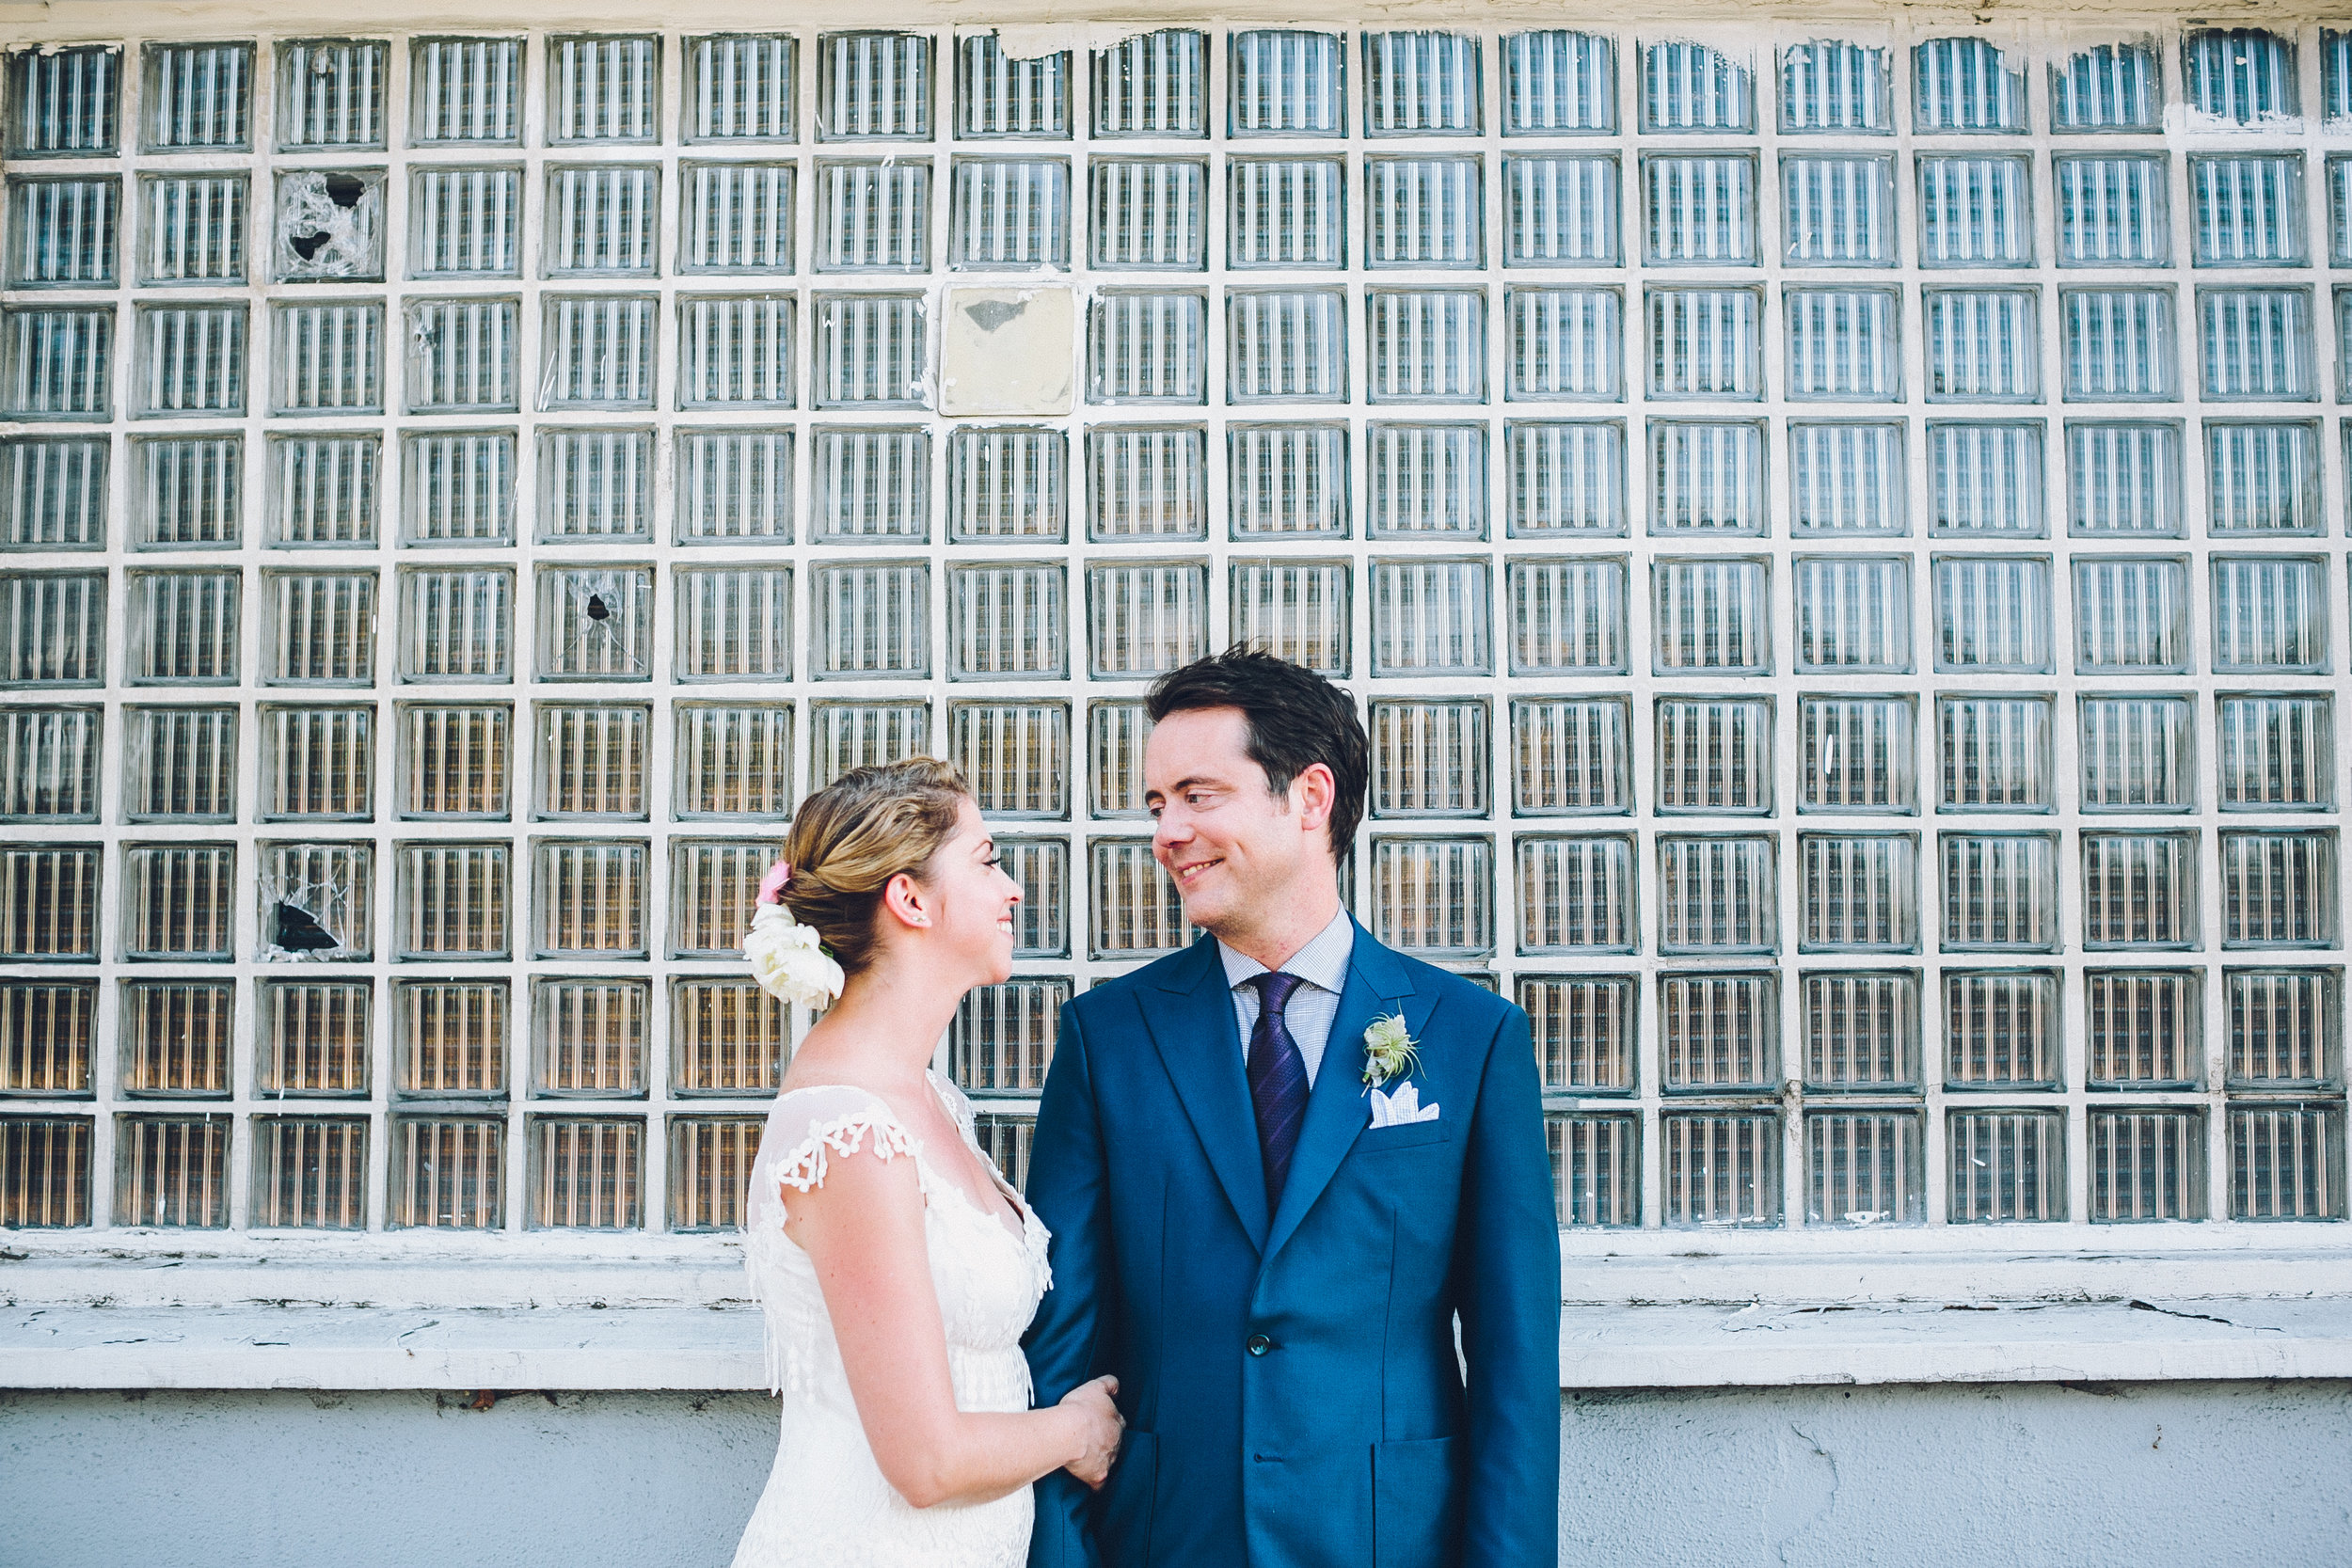 SARAH AND JON / ELYSIAN, LOS ANGELES CALIFORNIA WEDDING